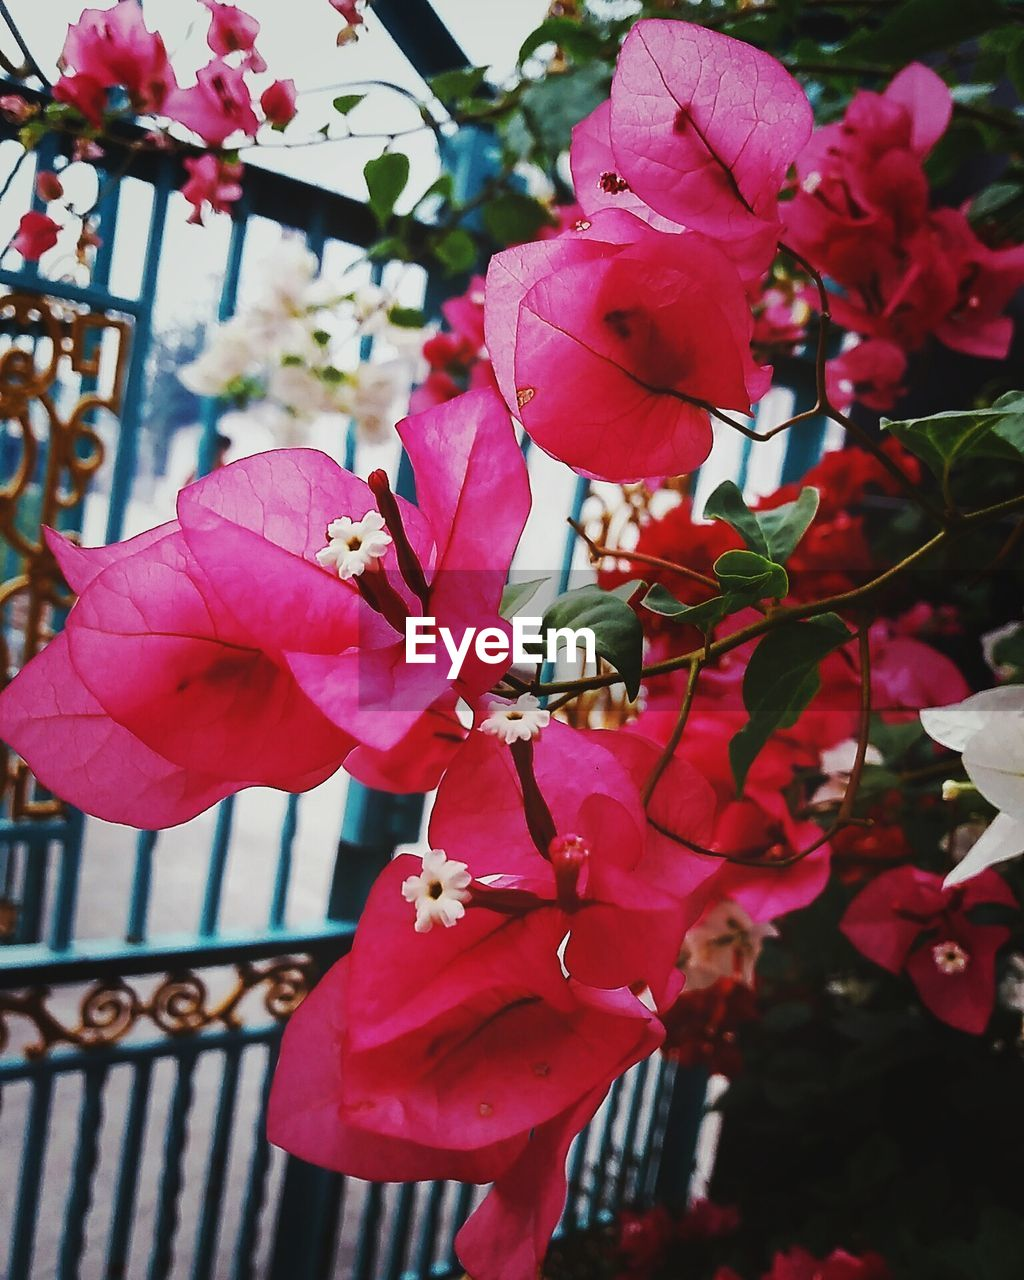 flower, petal, beauty in nature, pink color, growth, fragility, nature, flower head, freshness, no people, day, outdoors, blooming, close-up, focus on foreground, bougainvillea, plant, springtime, tree